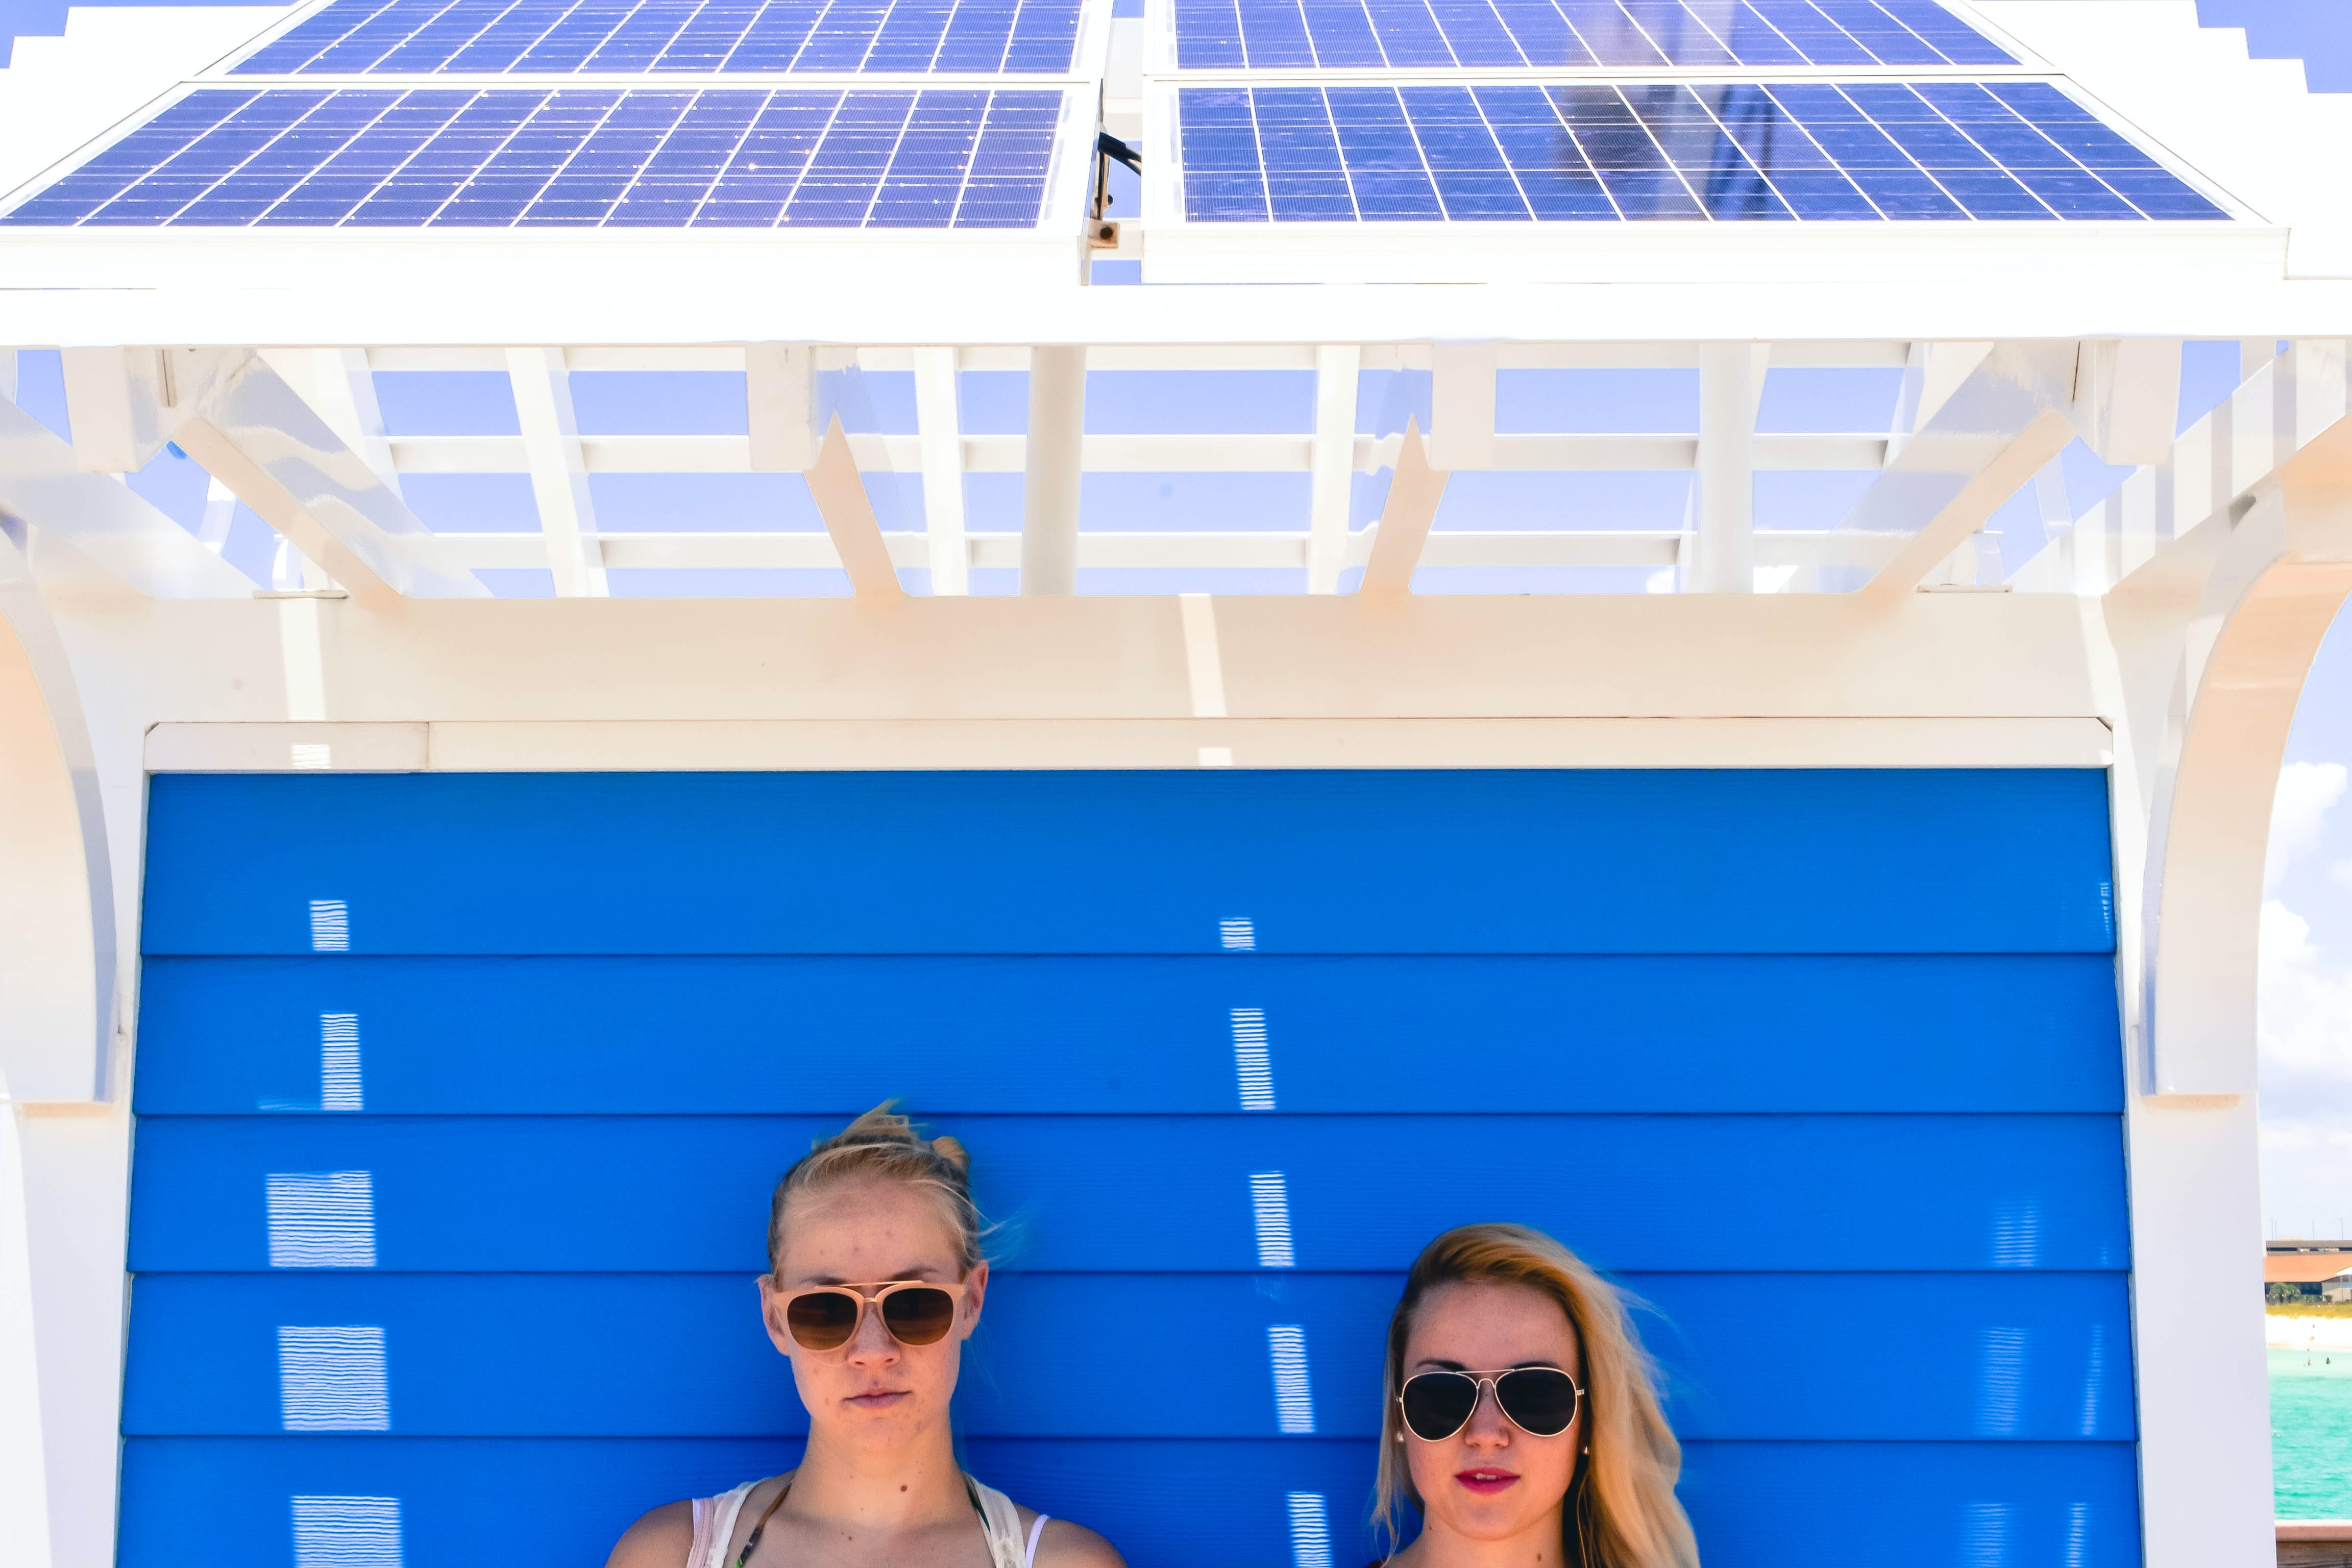 Two young women posing in front of blue wooden wall beneath solar cells at Panama City Beach